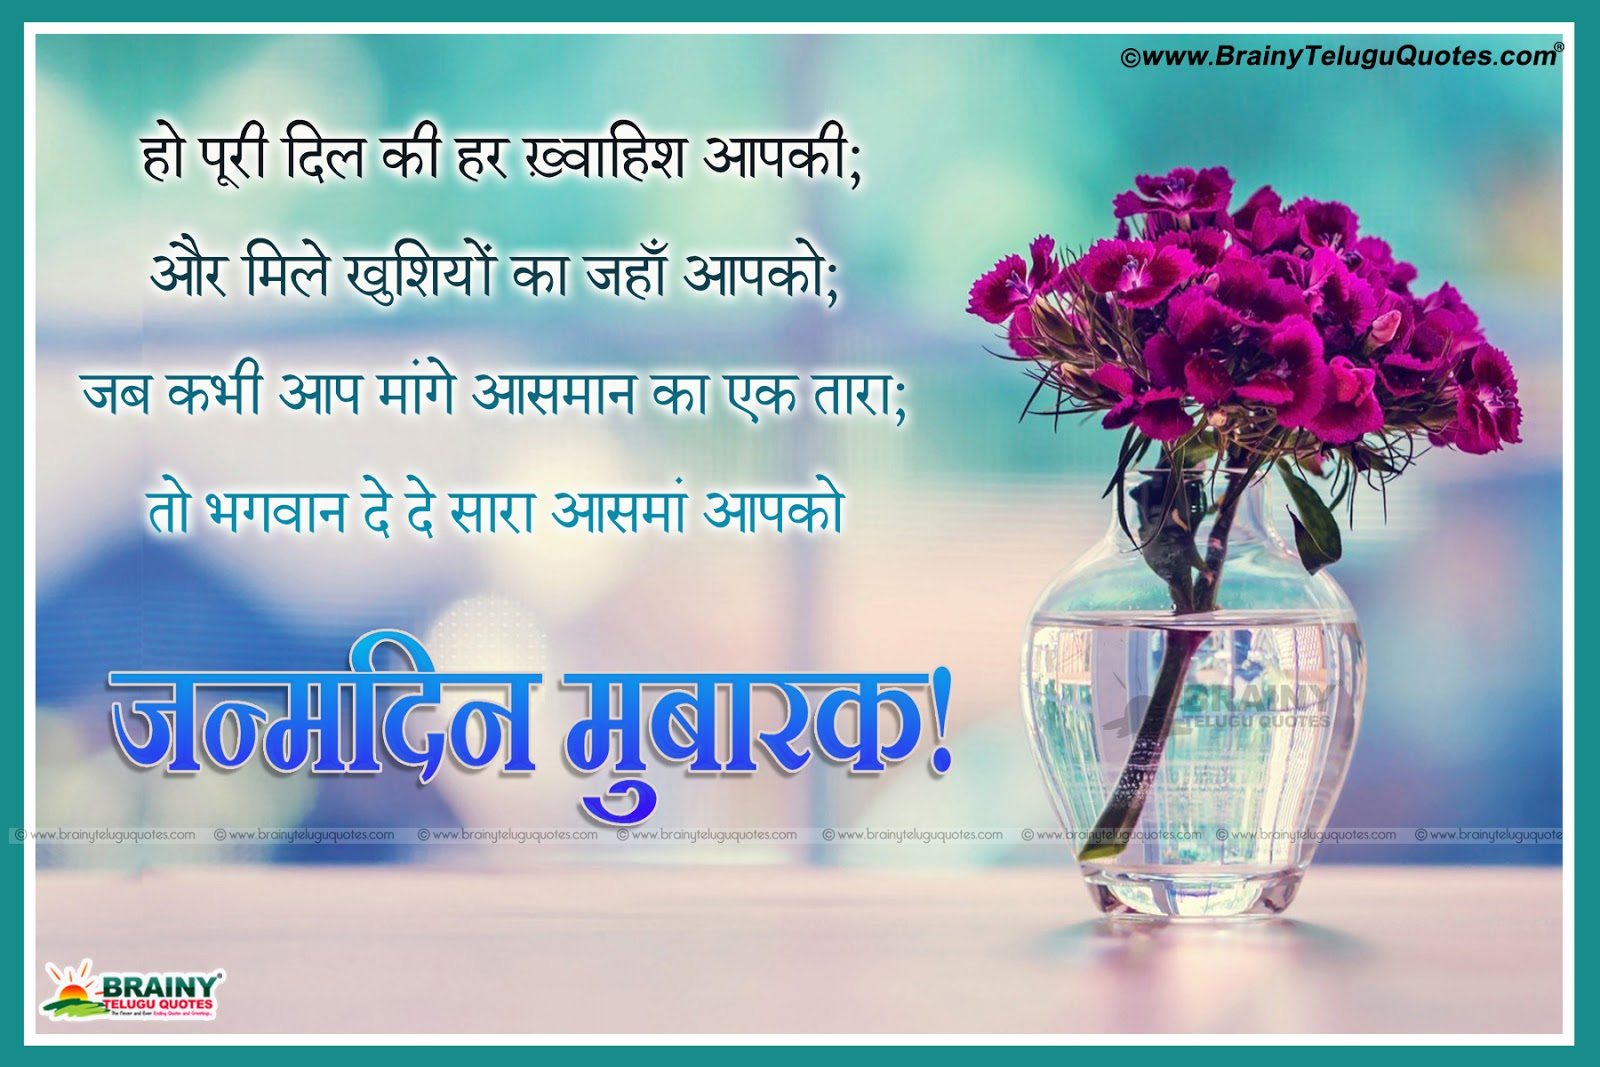 birthday message for nephew in hindi ; happy%2520birthday%2520wishes%2520message%2520to%2520friend%2520in%2520hindi%2520;%2520Awesome-Birthday-Wishes-in-Hindi-for-Friends